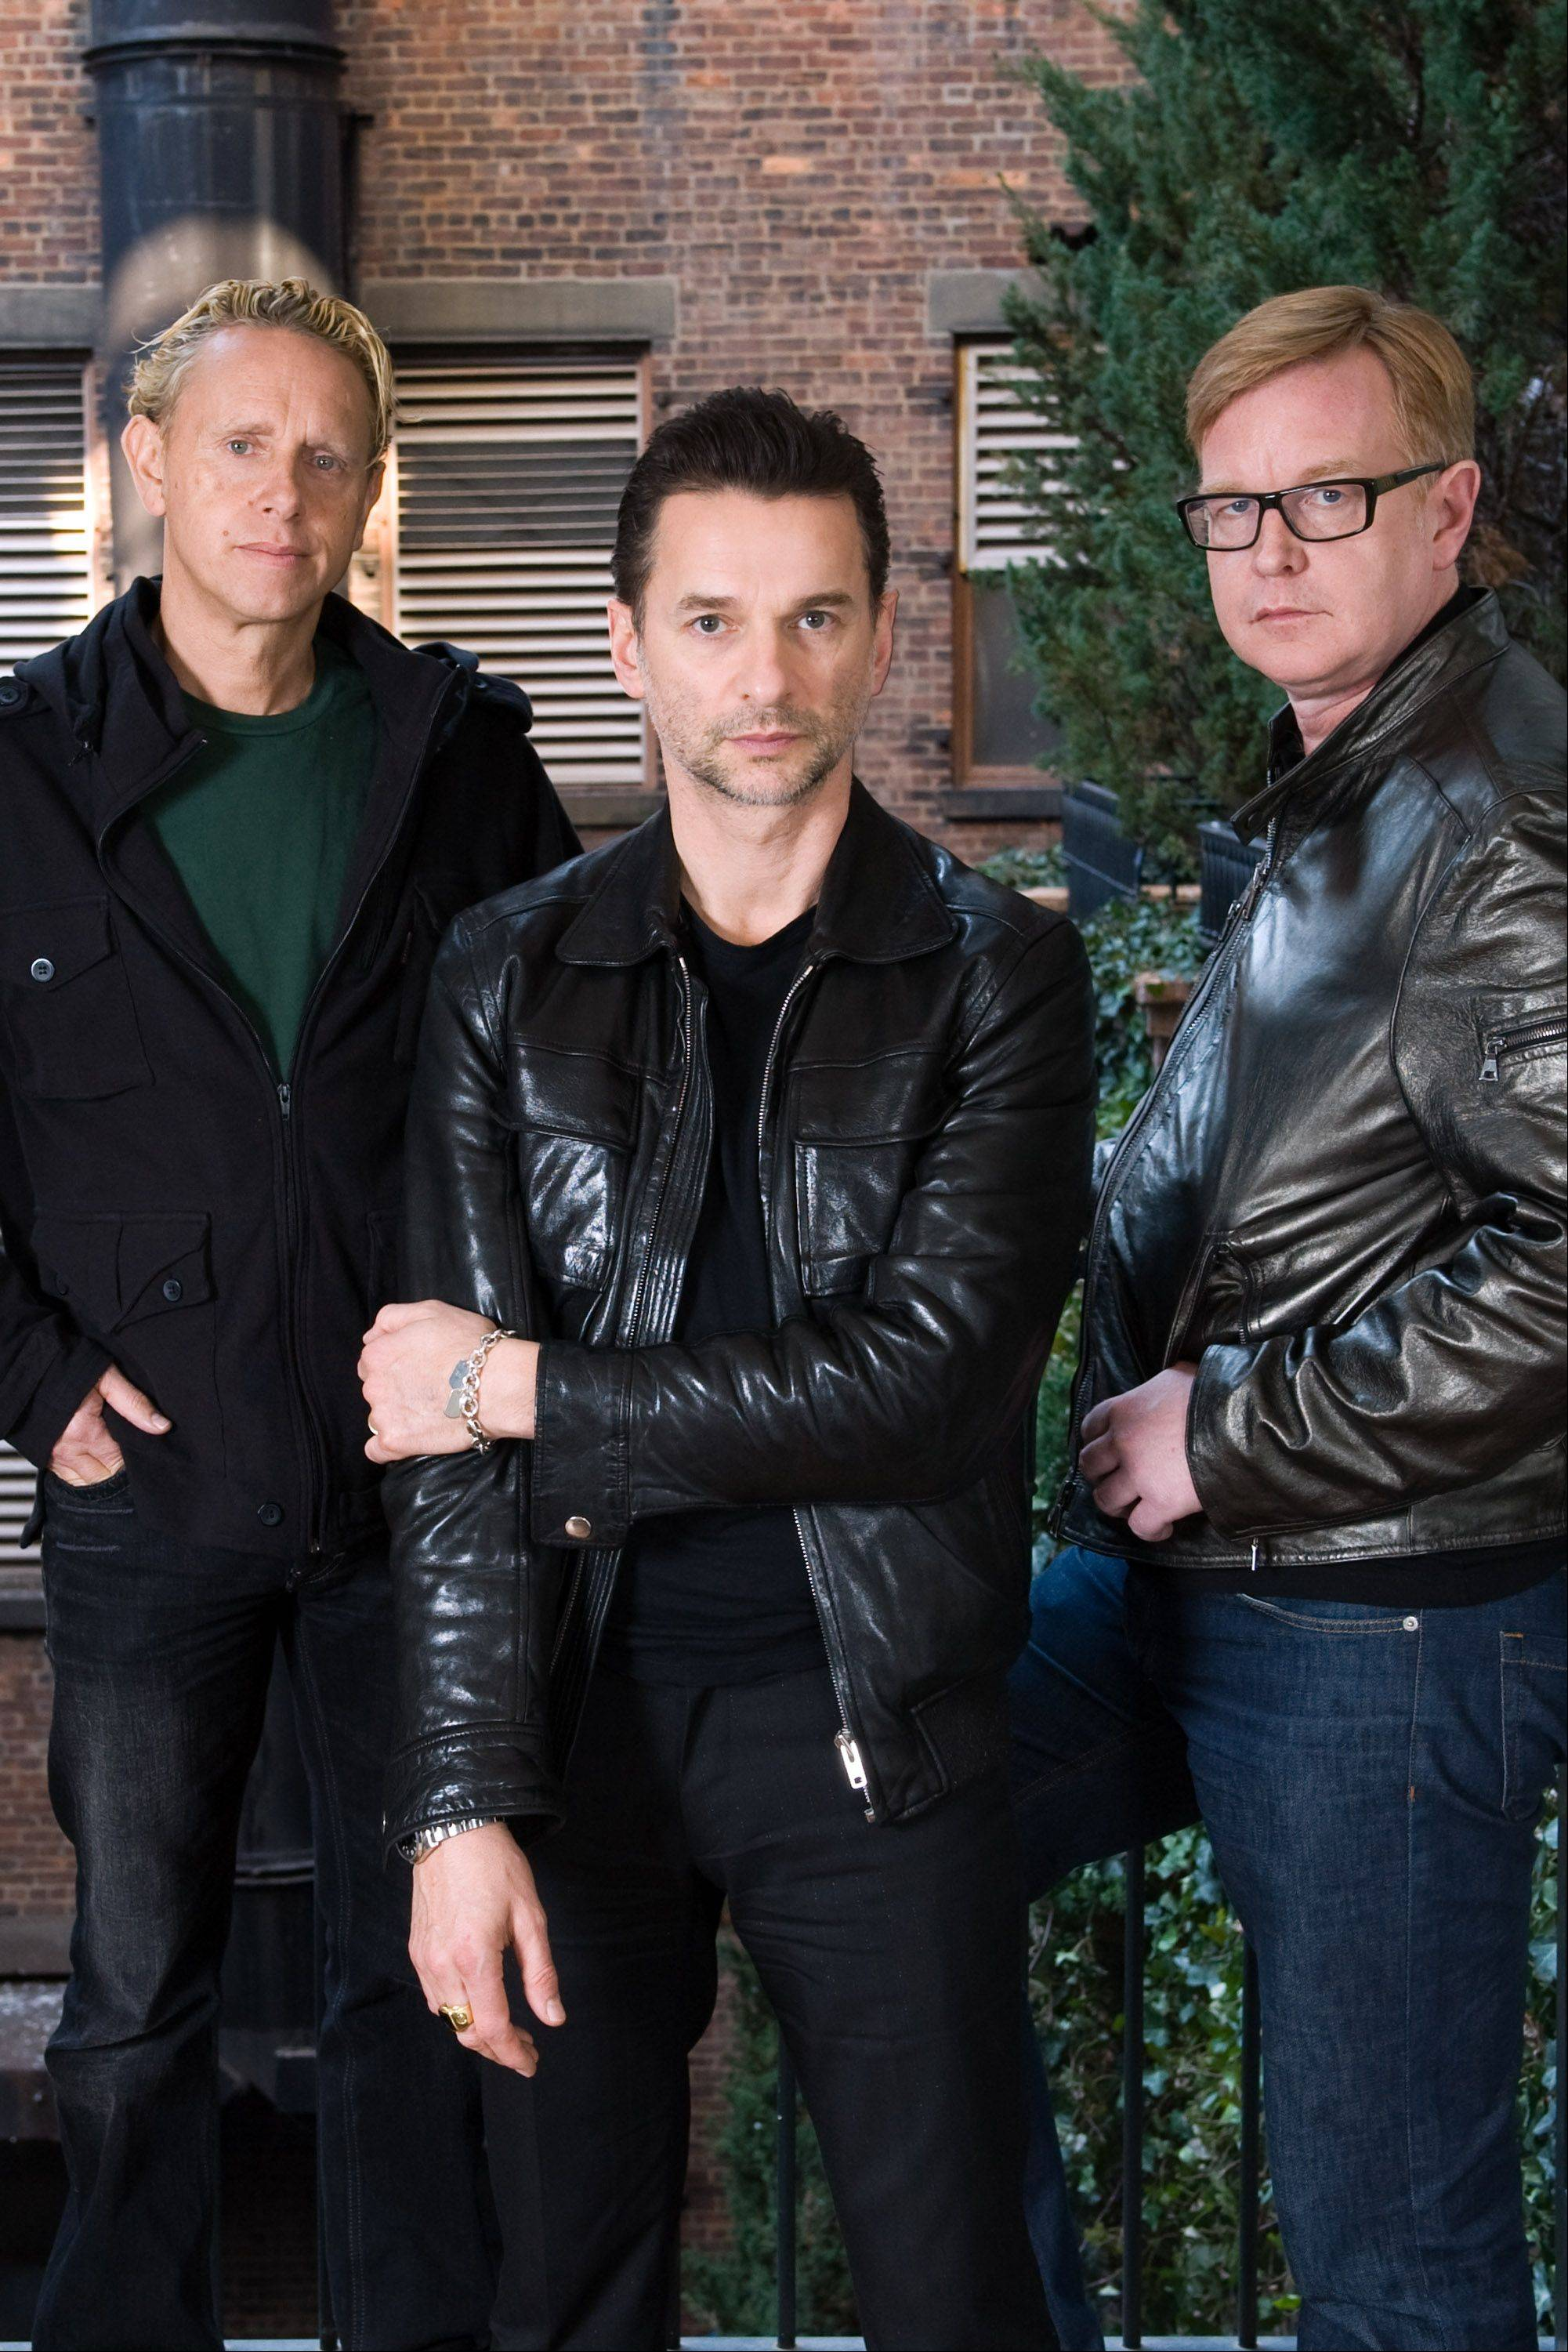 See Depeche Mode at the First Midwest Bank Amphitheatre in Tinley Park.